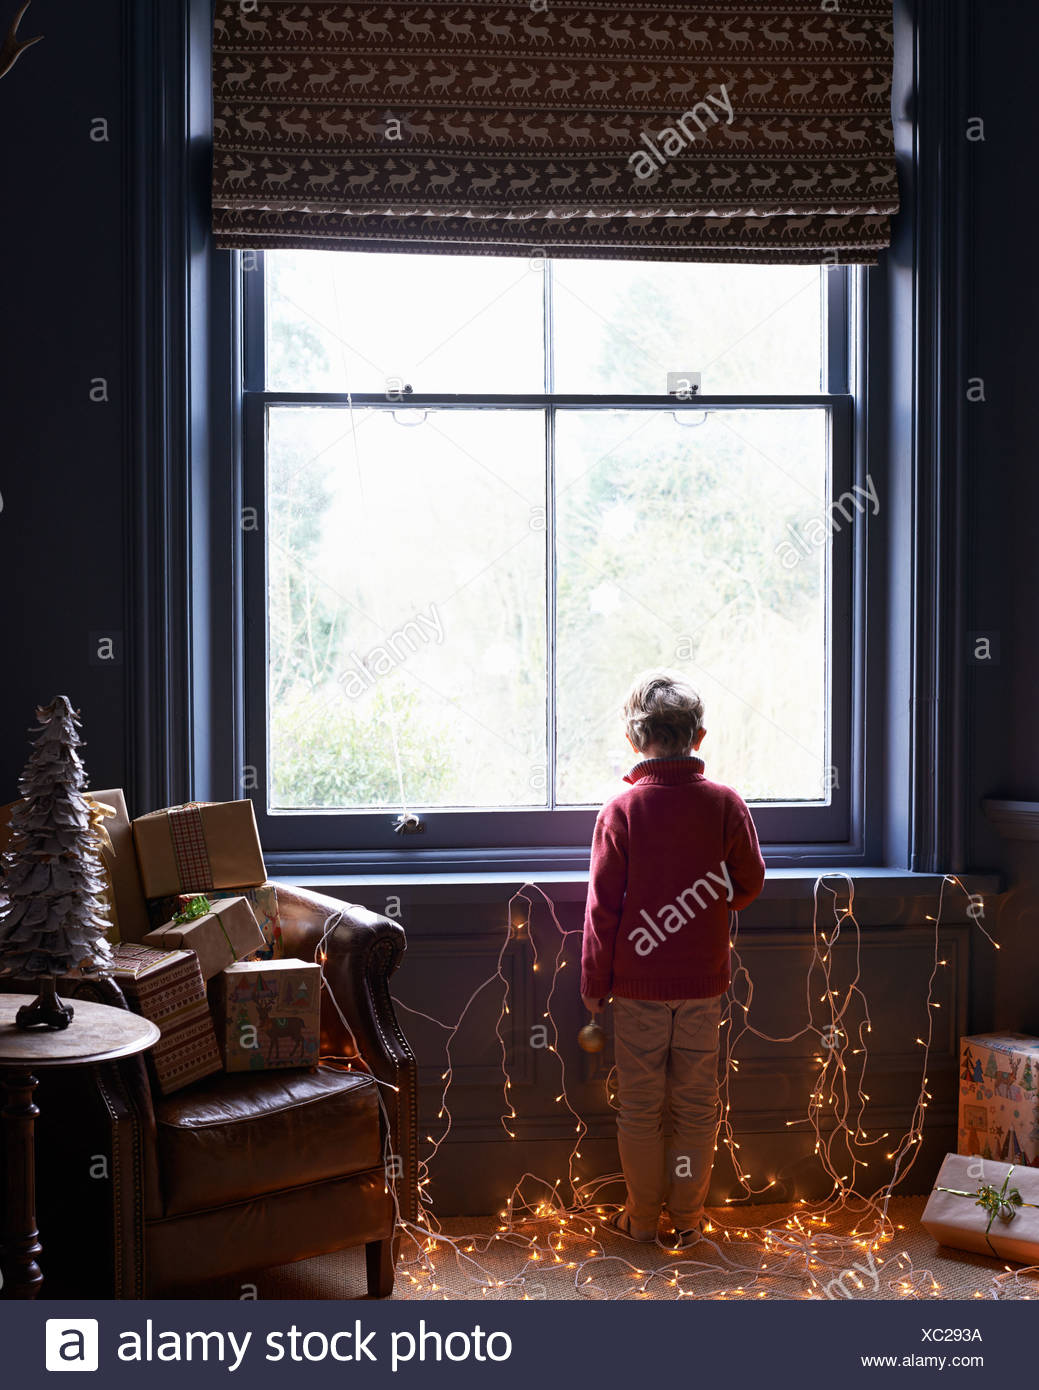 Boy playing with Christmas lights - Stock Image